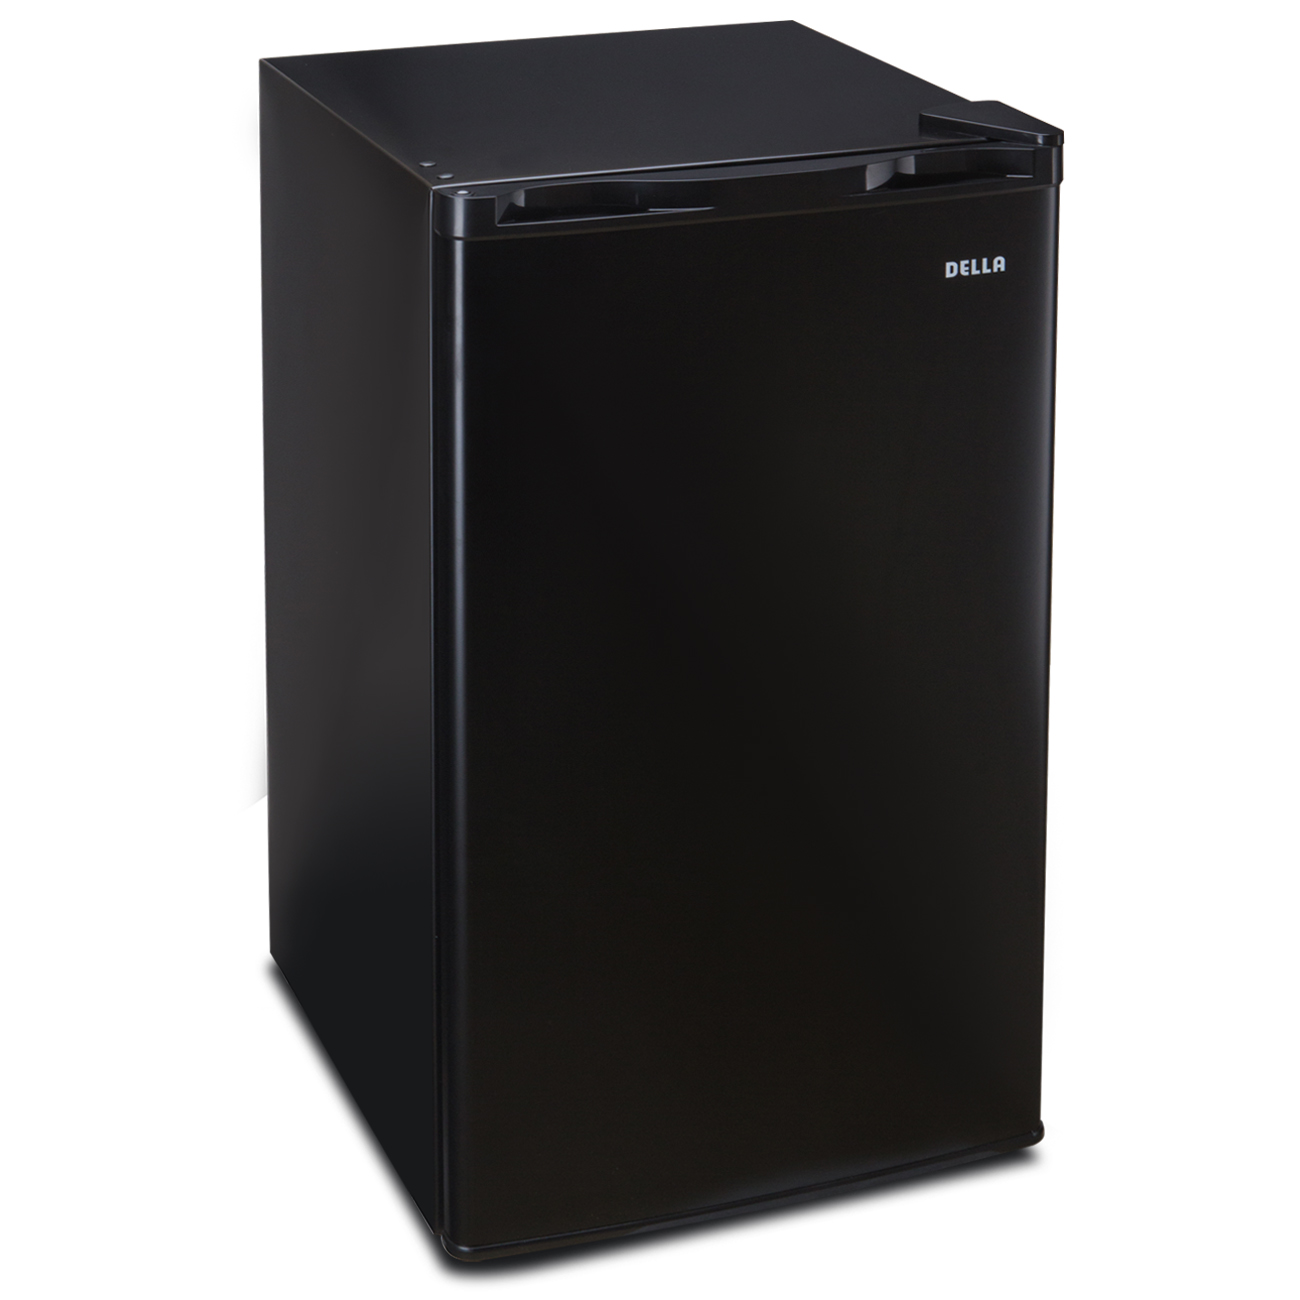 mini dorm refrigerator and freezer compact fridge cooler. Black Bedroom Furniture Sets. Home Design Ideas